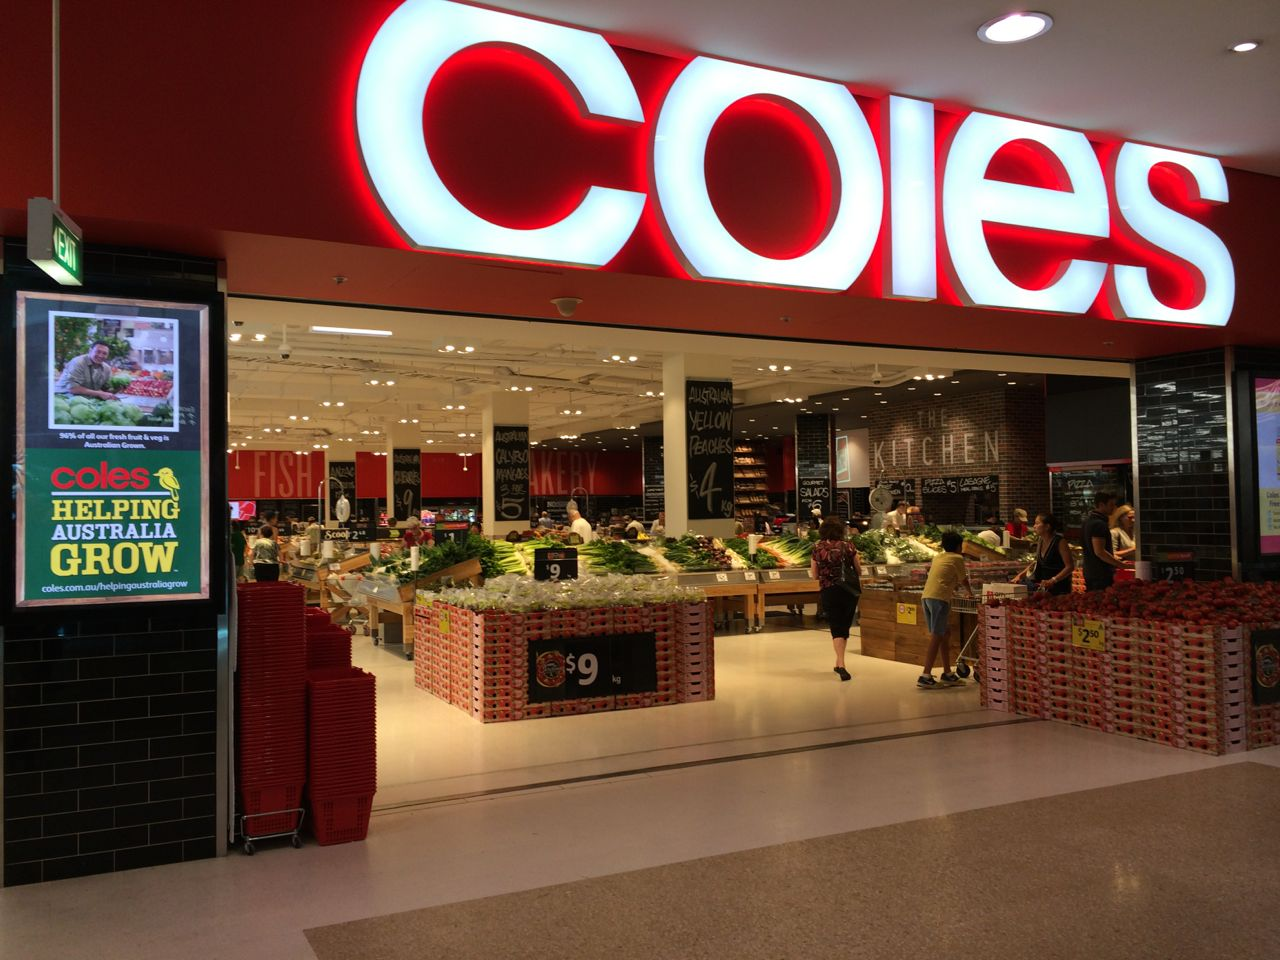 coles myer is australias largest retailer Coles myer is australia's largest retailer with more than 1,900 stores throughout australia and new zealand serving more than 45 million customers every week.